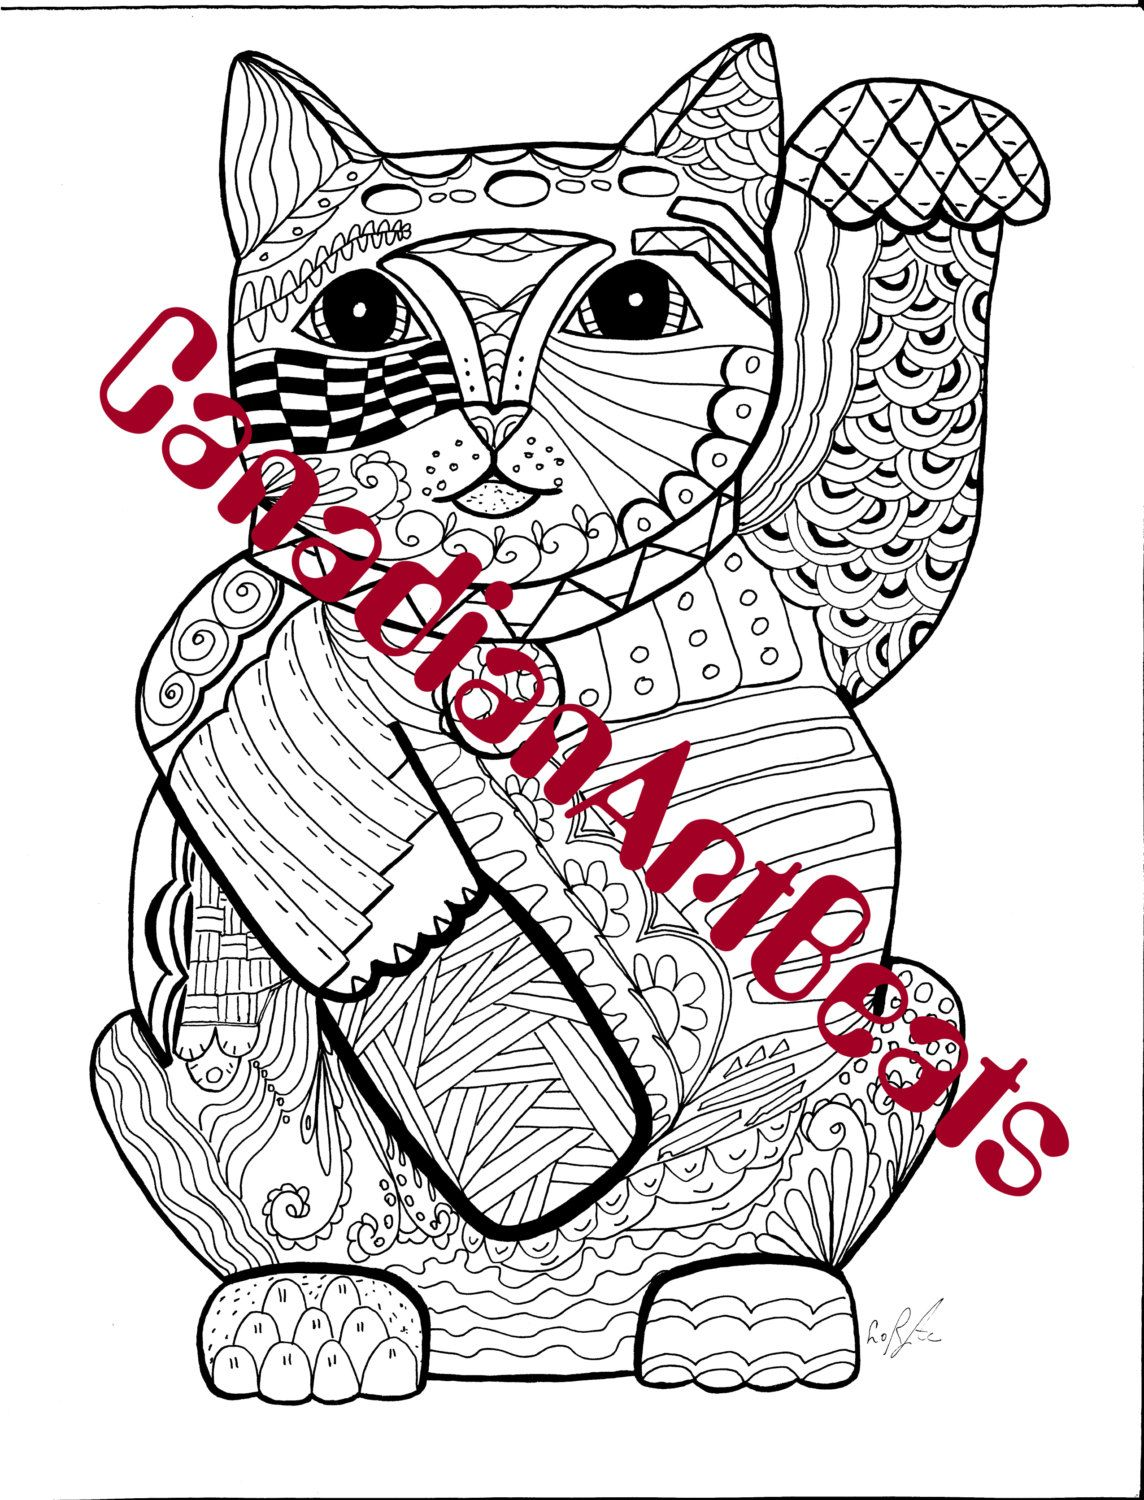 Printable coloring pages etsy - Printable Downloadable Makeni Neko Zentangle Inspired Coloring Page By Canadianartbeats On Etsy